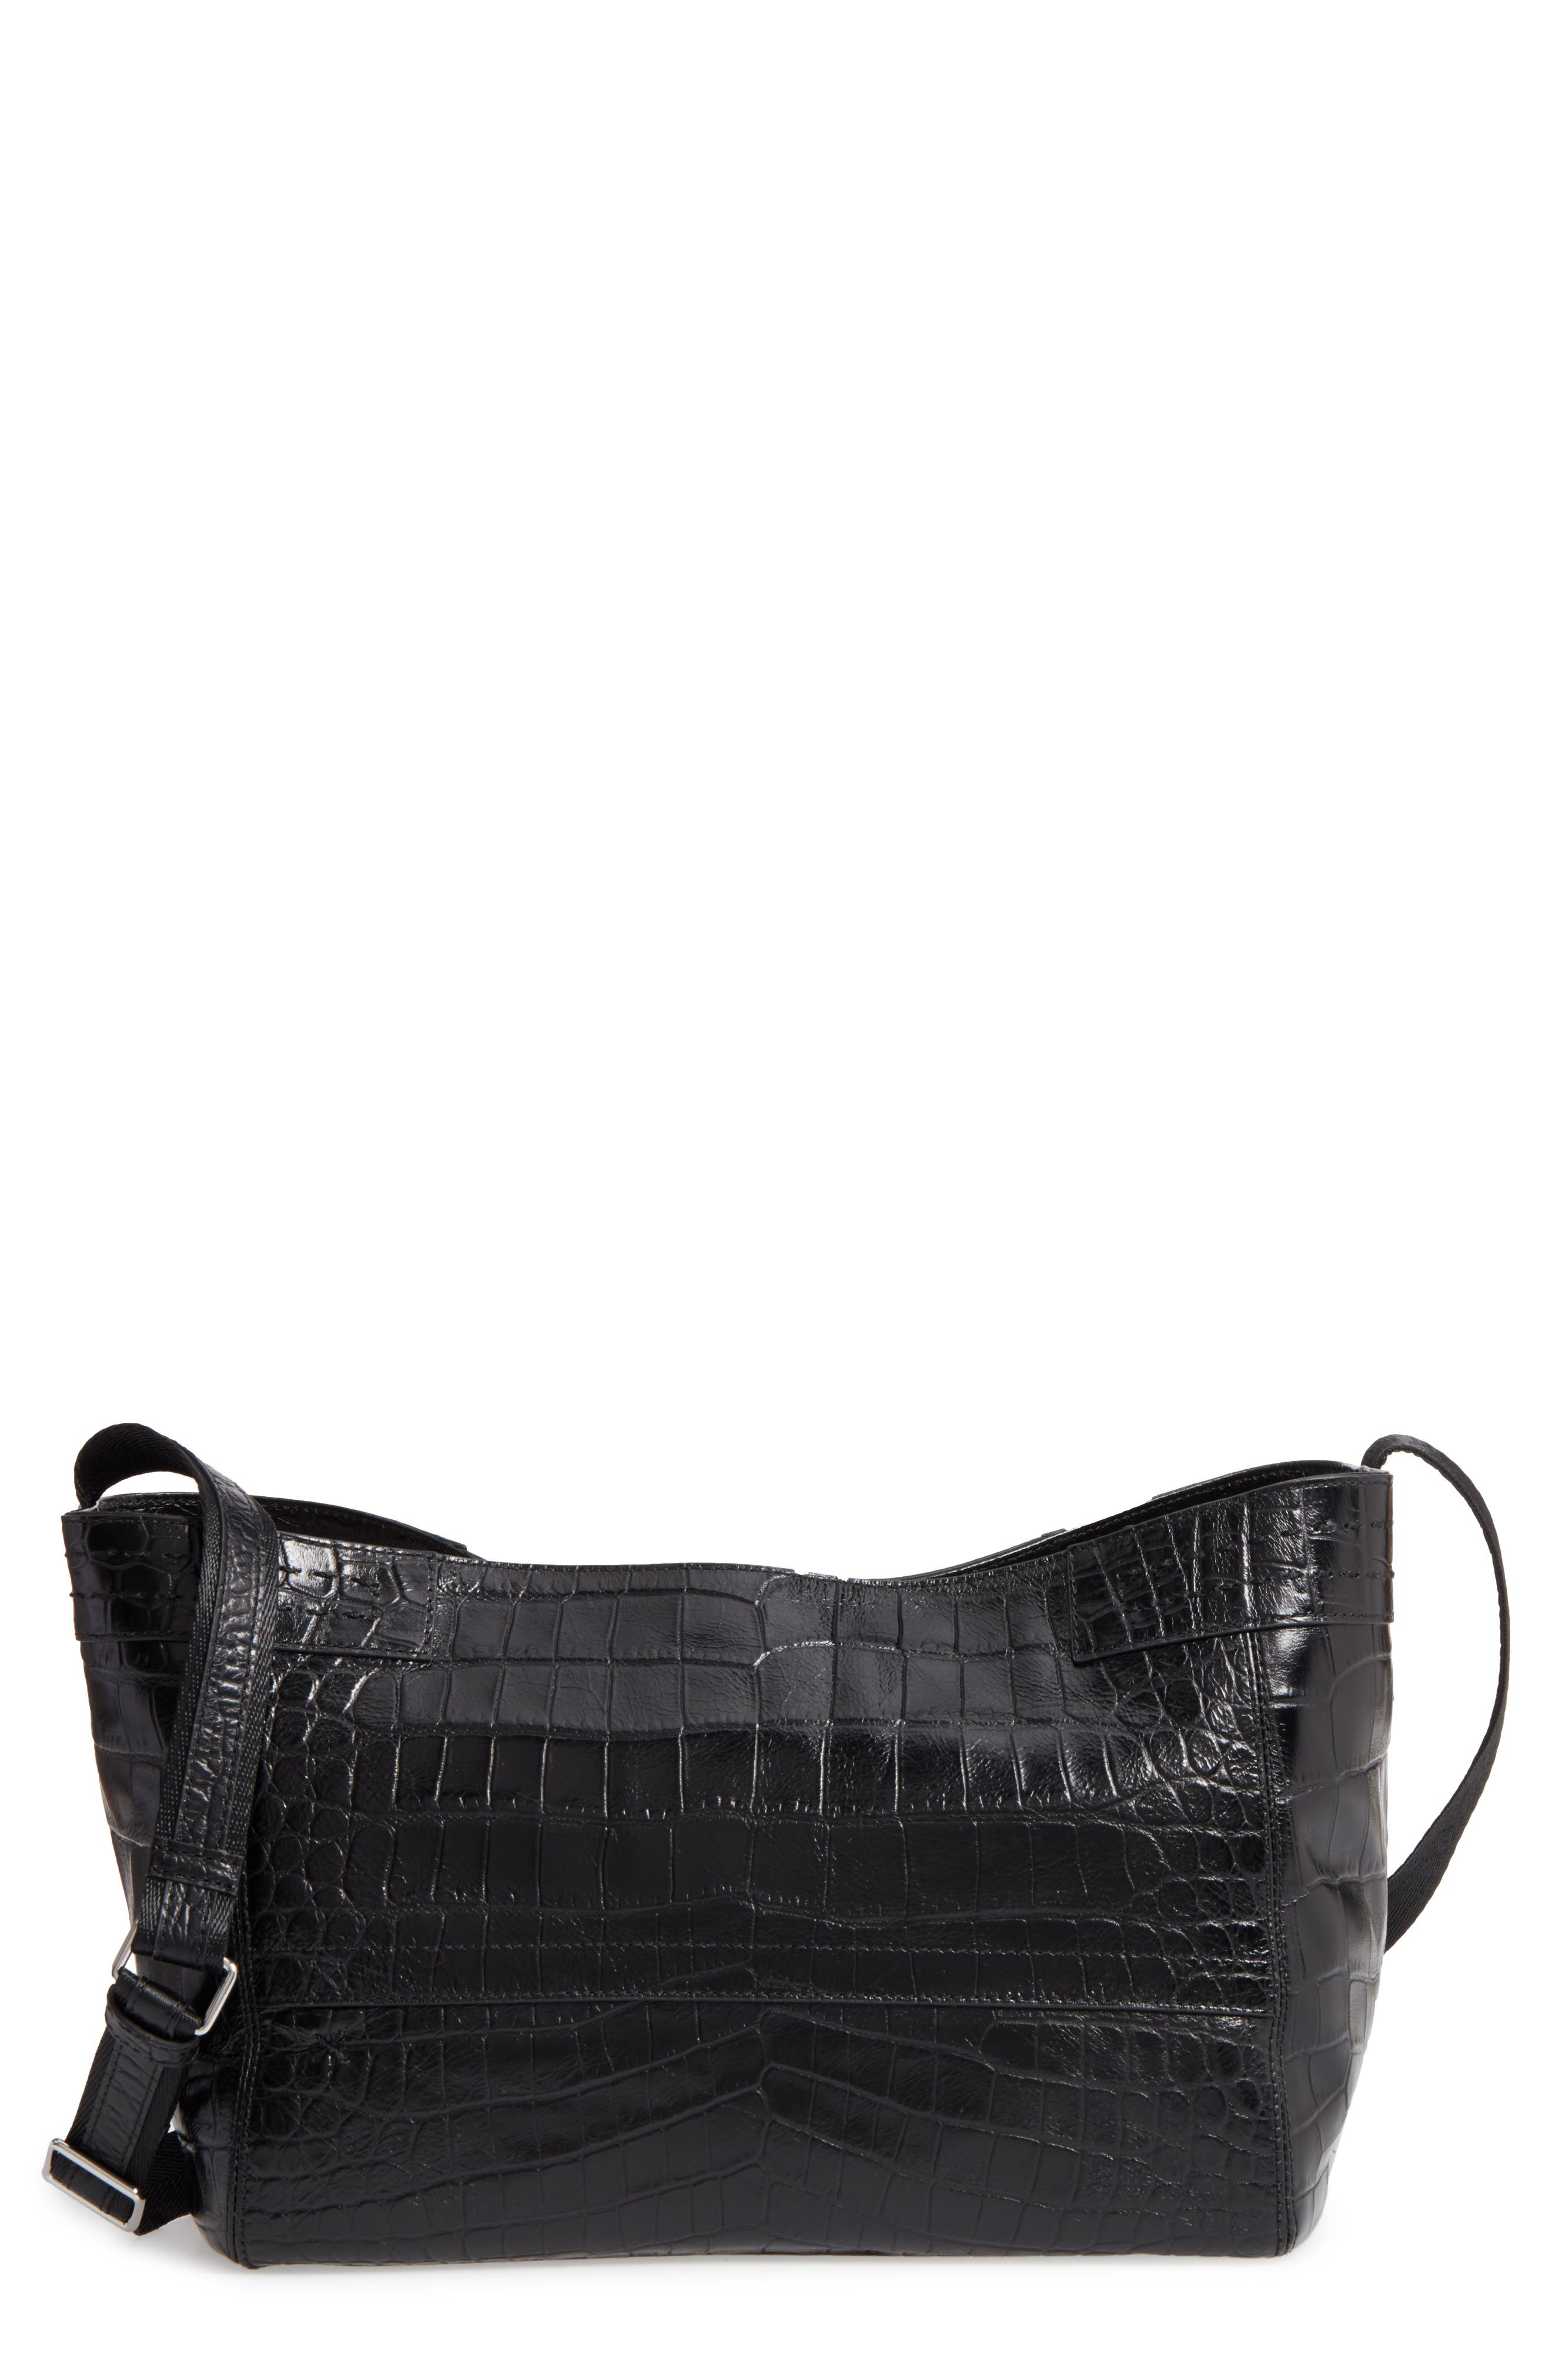 Elizabeth and James Mini Keely Newspaper Croc Embossed Leather Shoulder/Crossbody Bag